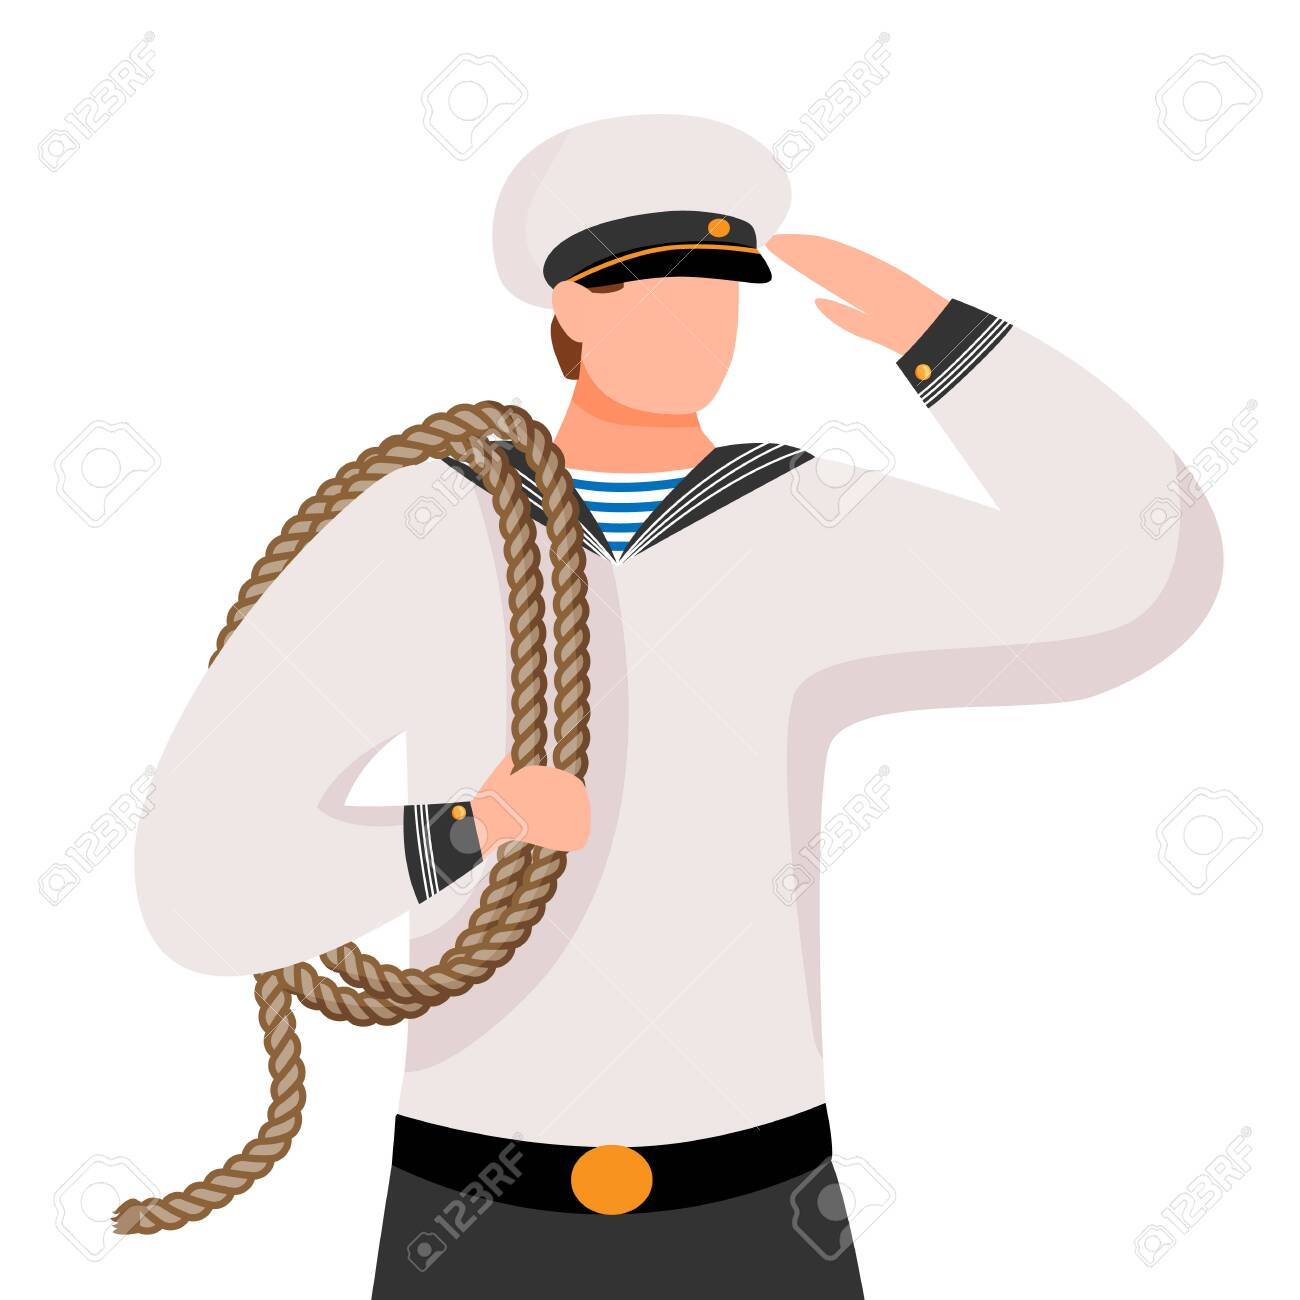 Cute Sailor In Uniform Royalty Free Cliparts, Vectors, And Stock  Illustration. Image 4997832.